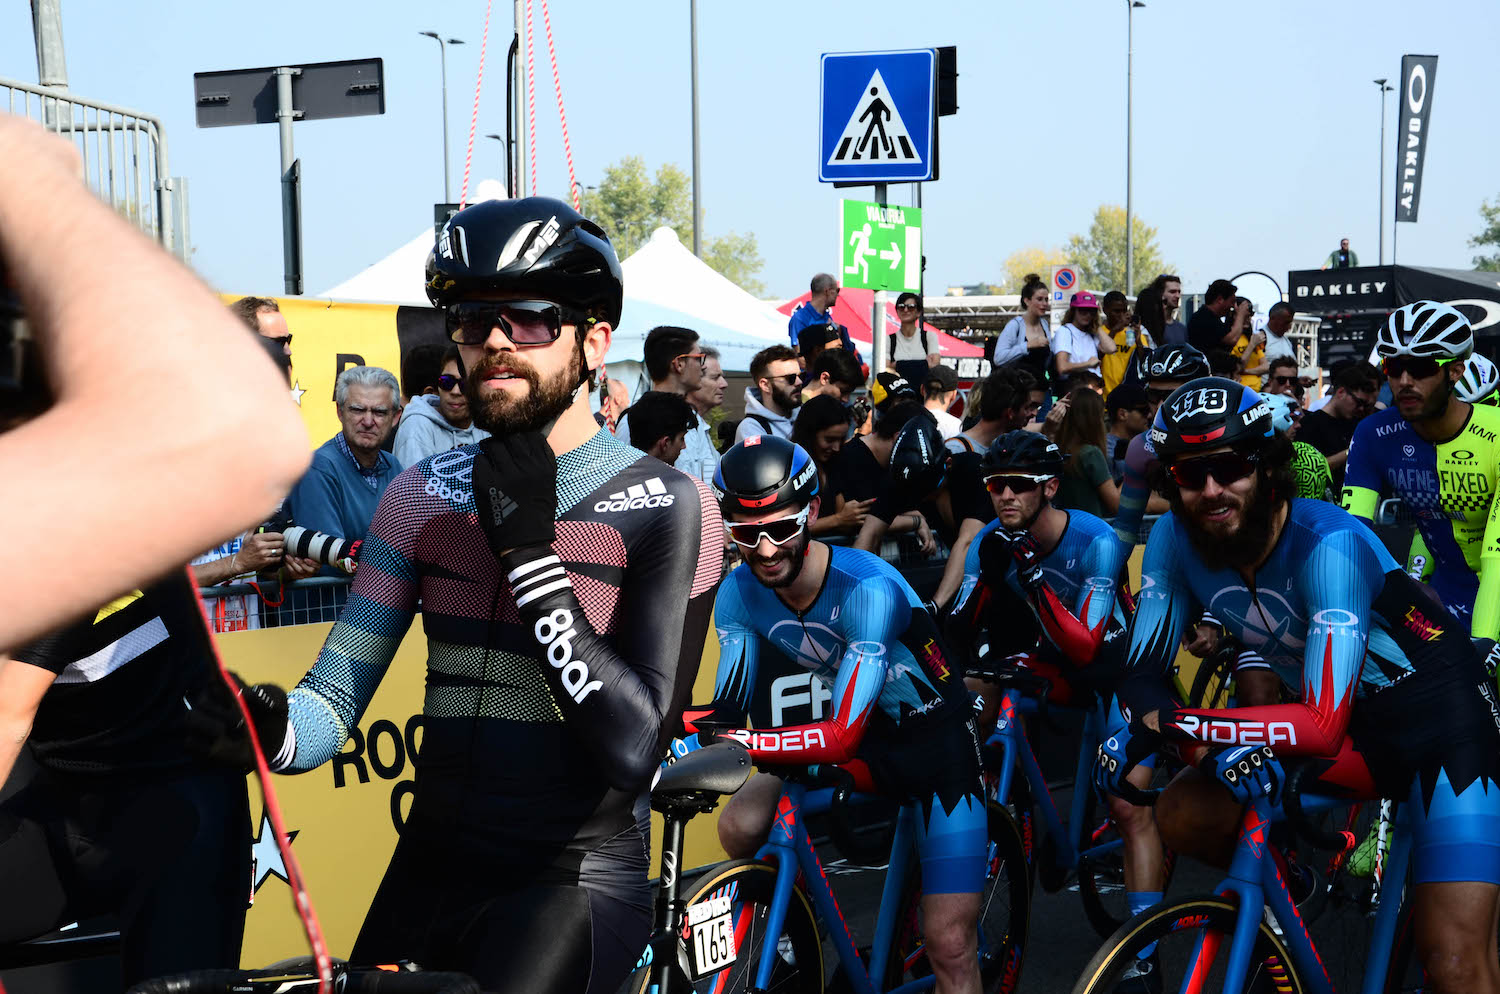 8bar-team-red-hook-crit-milan-2017-dsc_6393